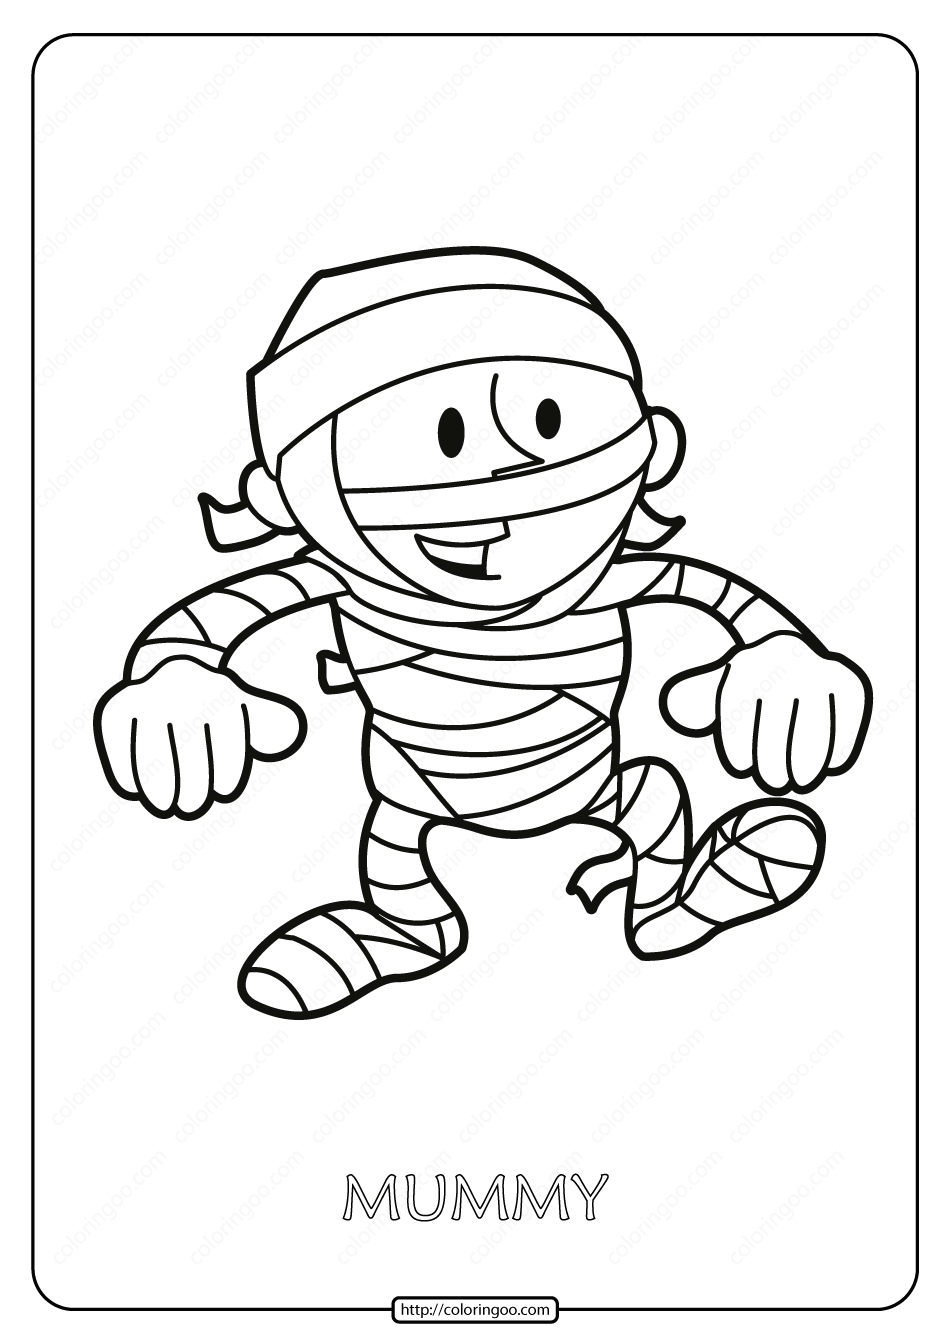 Free Printable Mummy Pdf Coloring Page